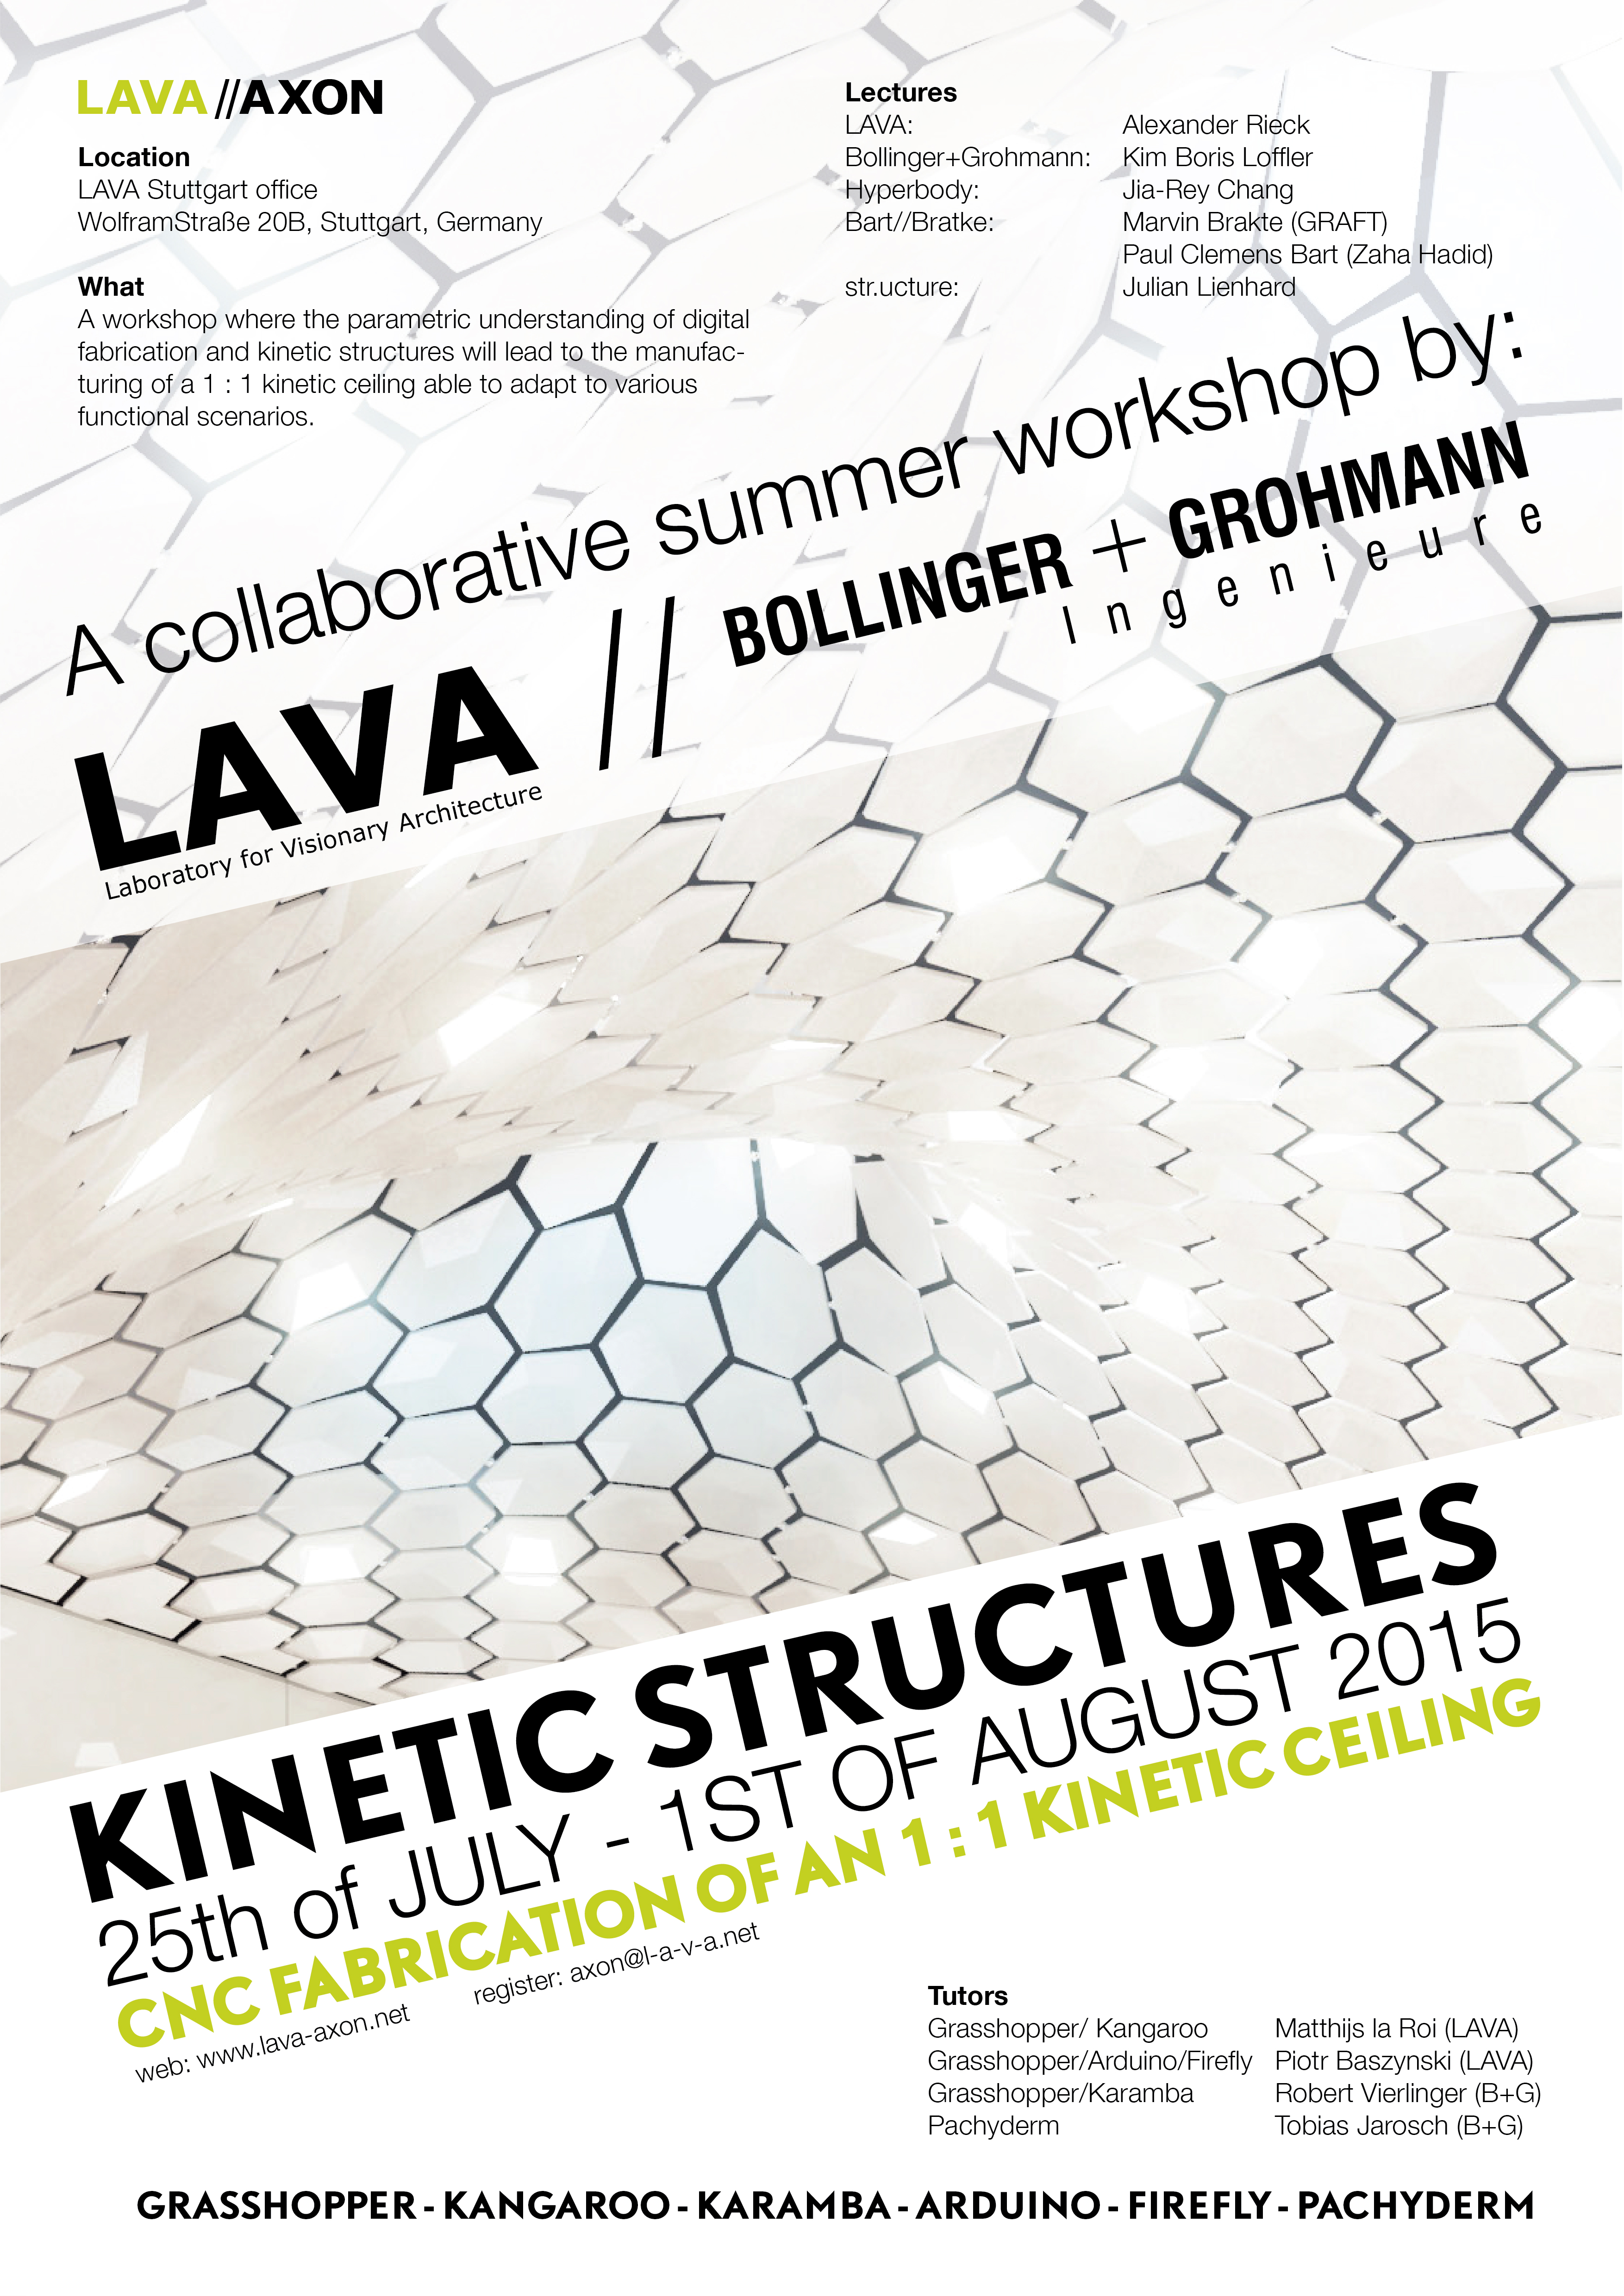 lava-axon-kinetictstructures_poster2-01